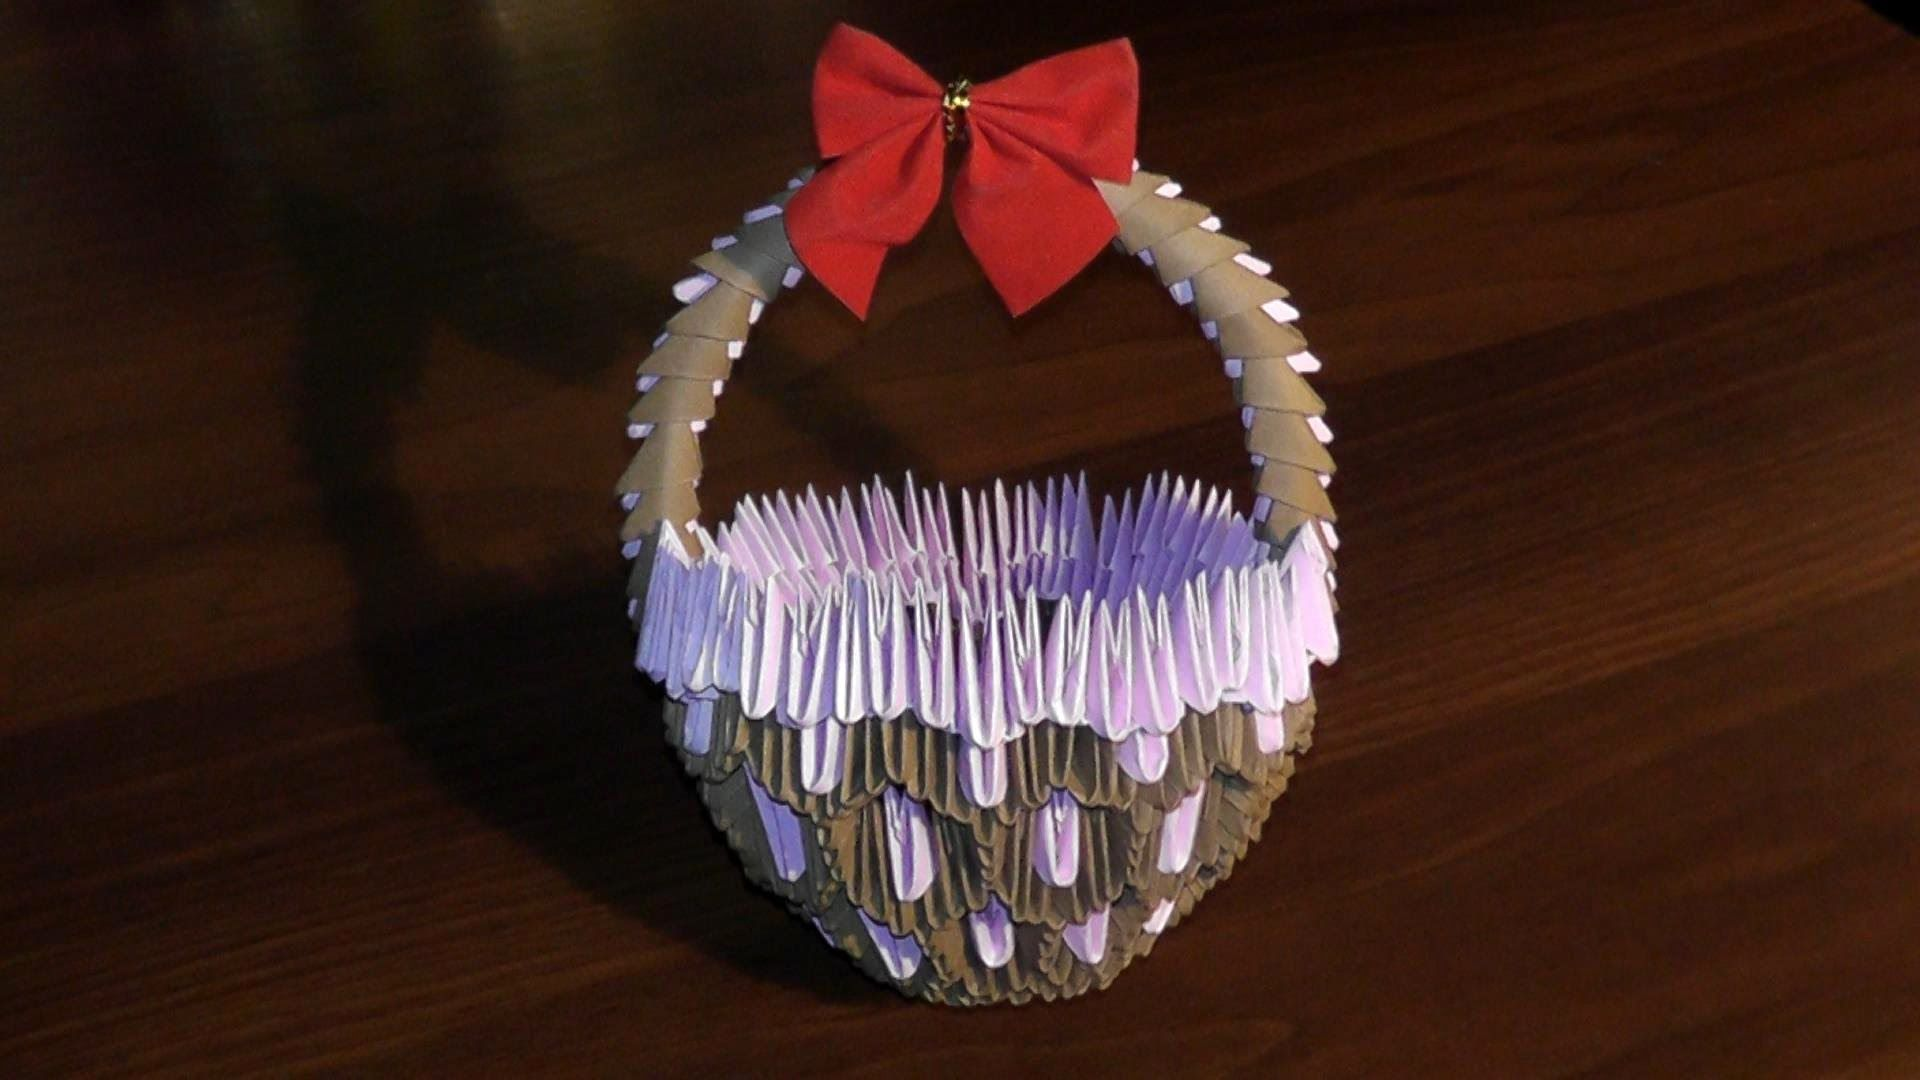 3d Origami Basket With Handle Master Class Tutorial Video